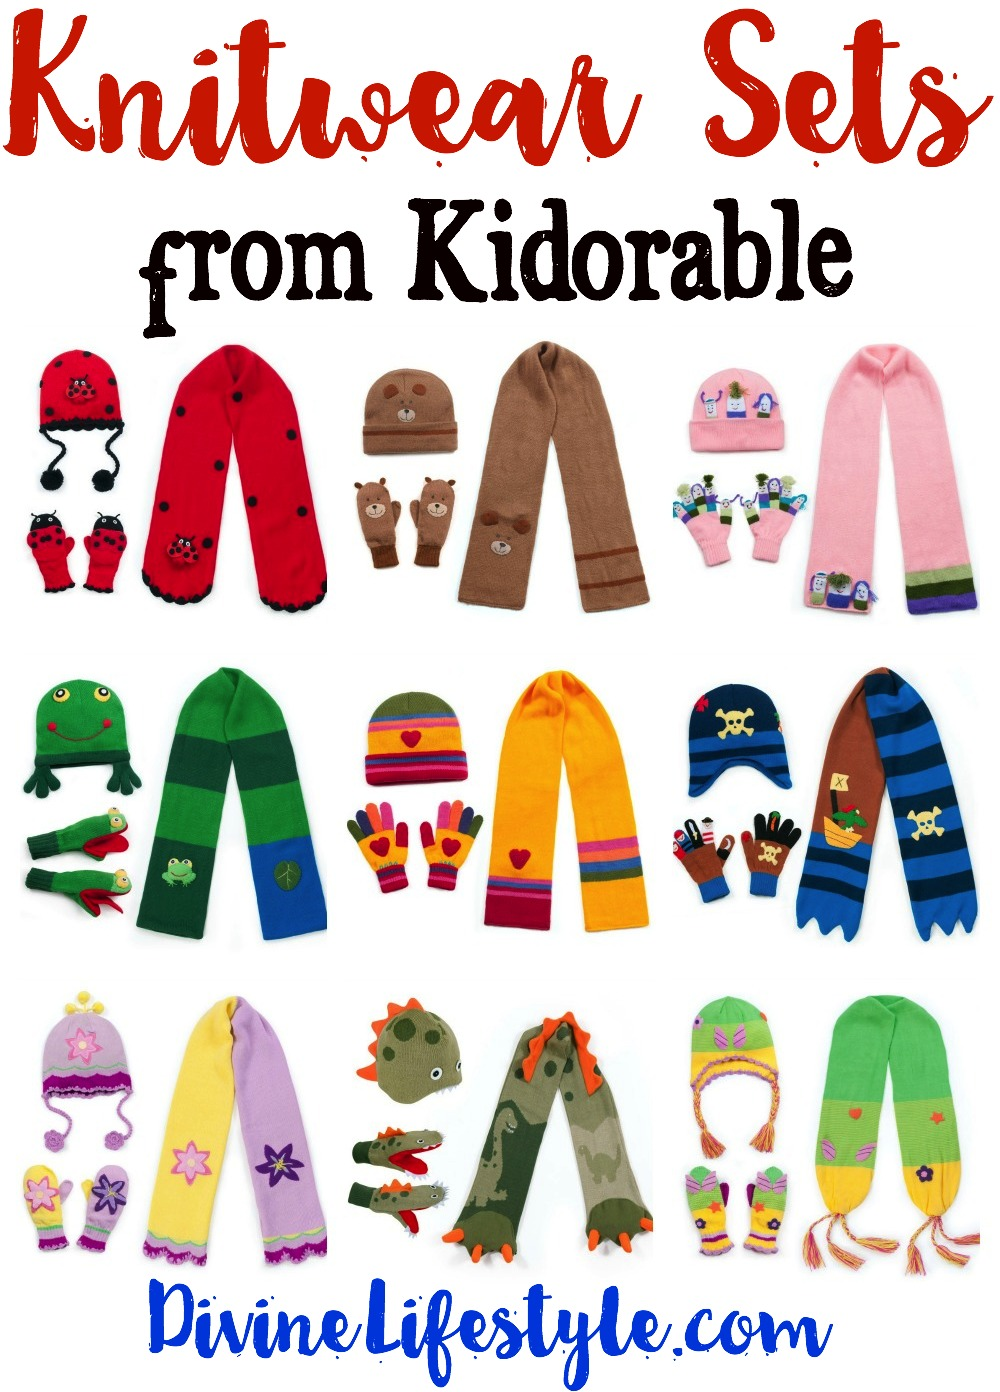 Knitwear Sets from Kidorable